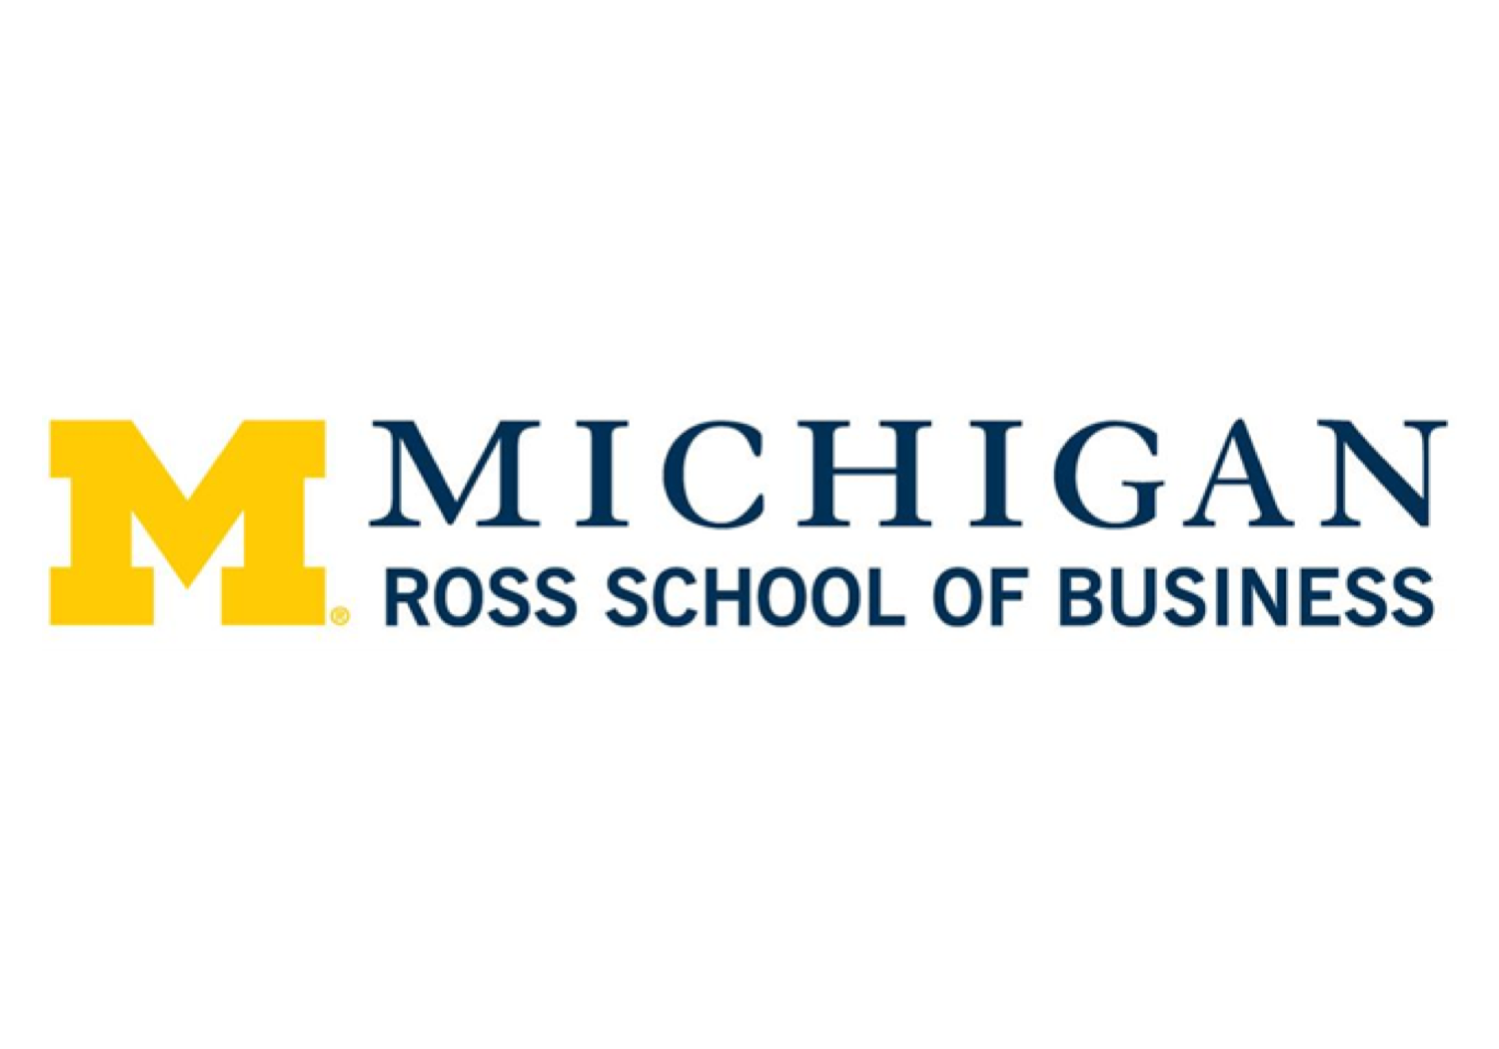 Michigan Ross School of Business.png